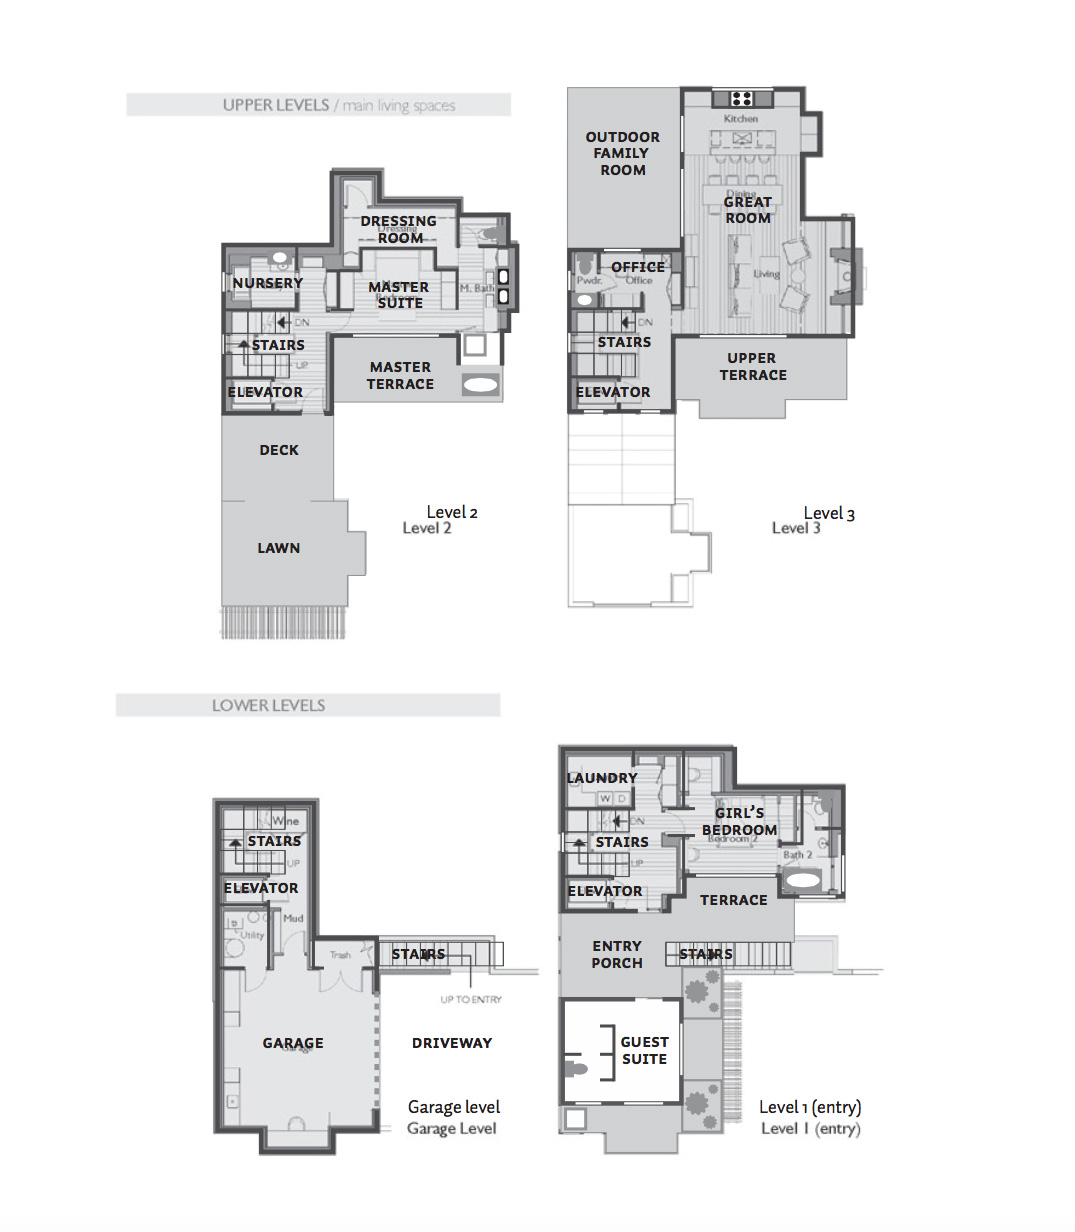 Floor plan: Upper levels